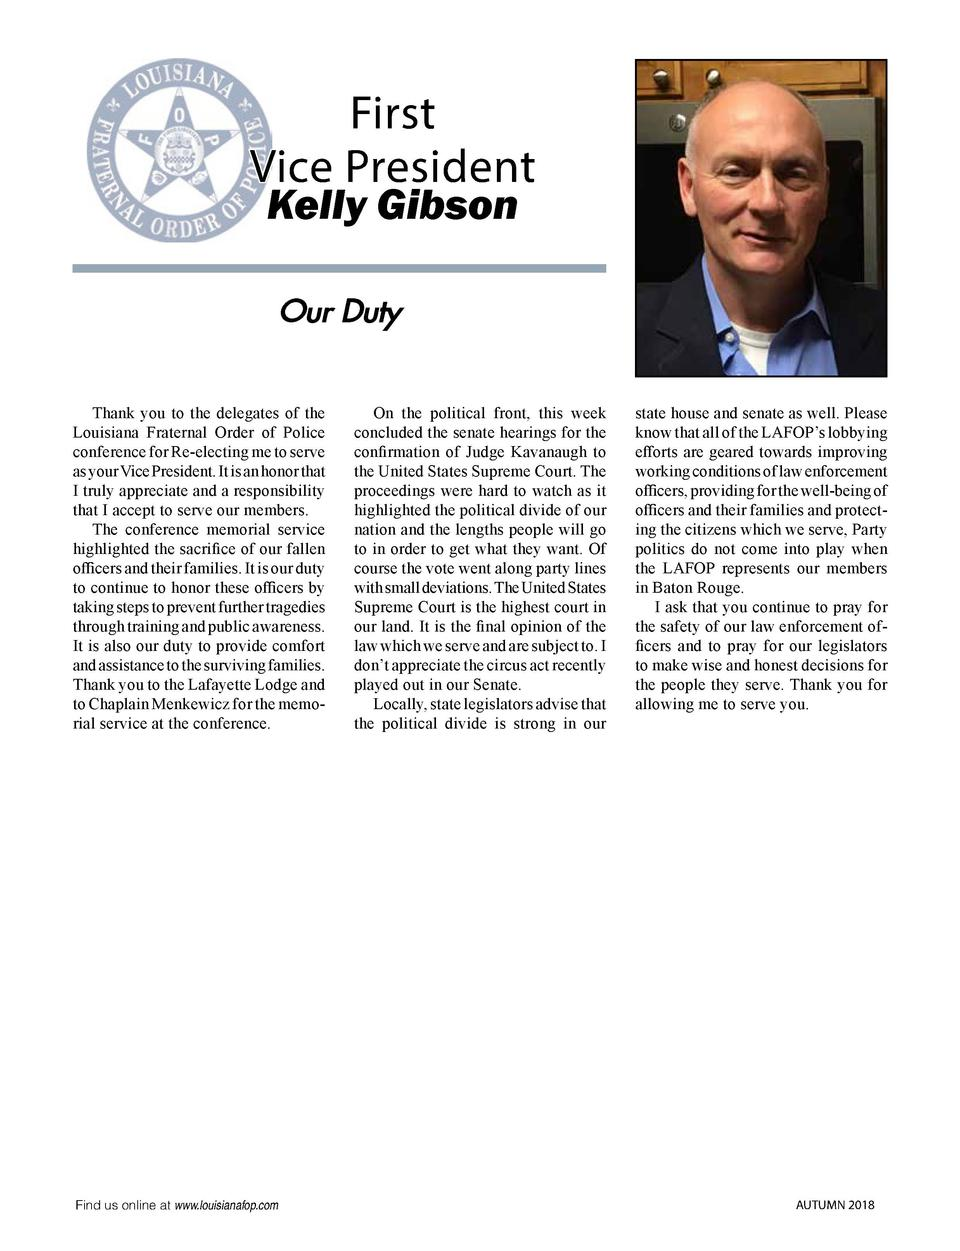 First Vice President Kelly Gibson Our Duty   Thank you to the delegates of the Louisiana Fraternal Order of Police confere...